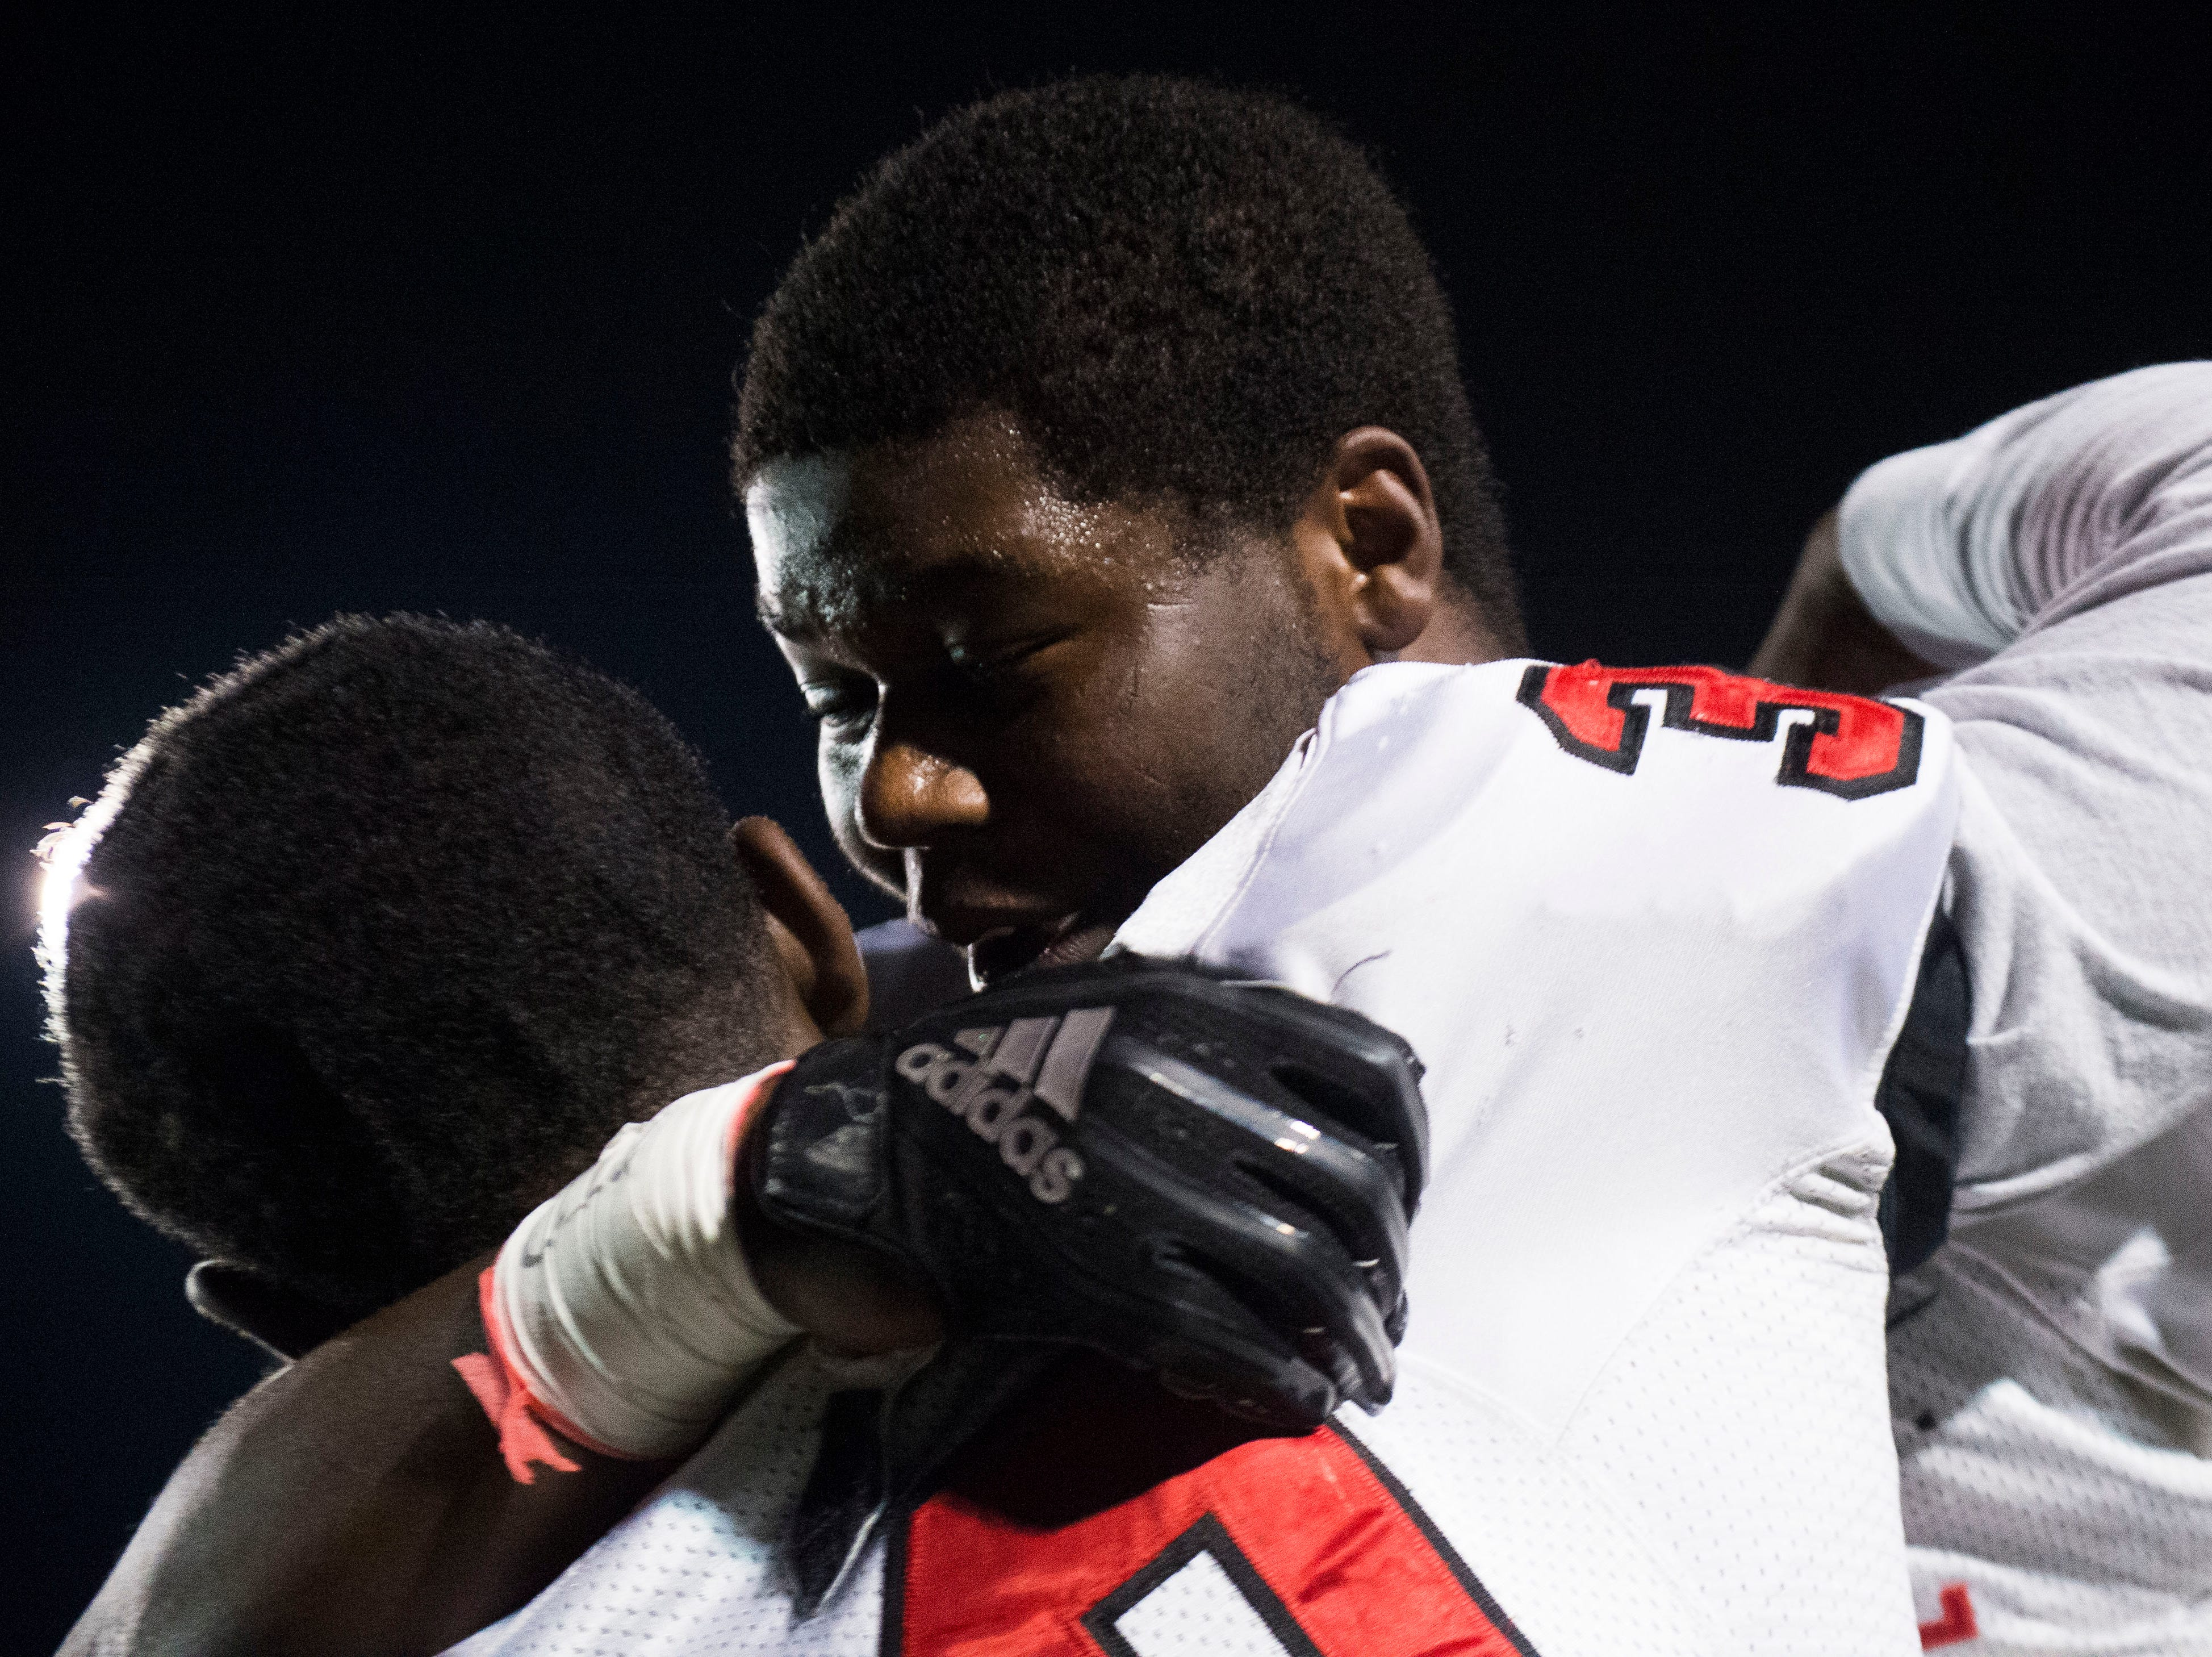 At left Central's Mark Adams (37) hugs a teammate after a Class 5A semifinal game between Central at Catholic Friday, Nov. 23, 2018. Central defeated Catholic 24-19.